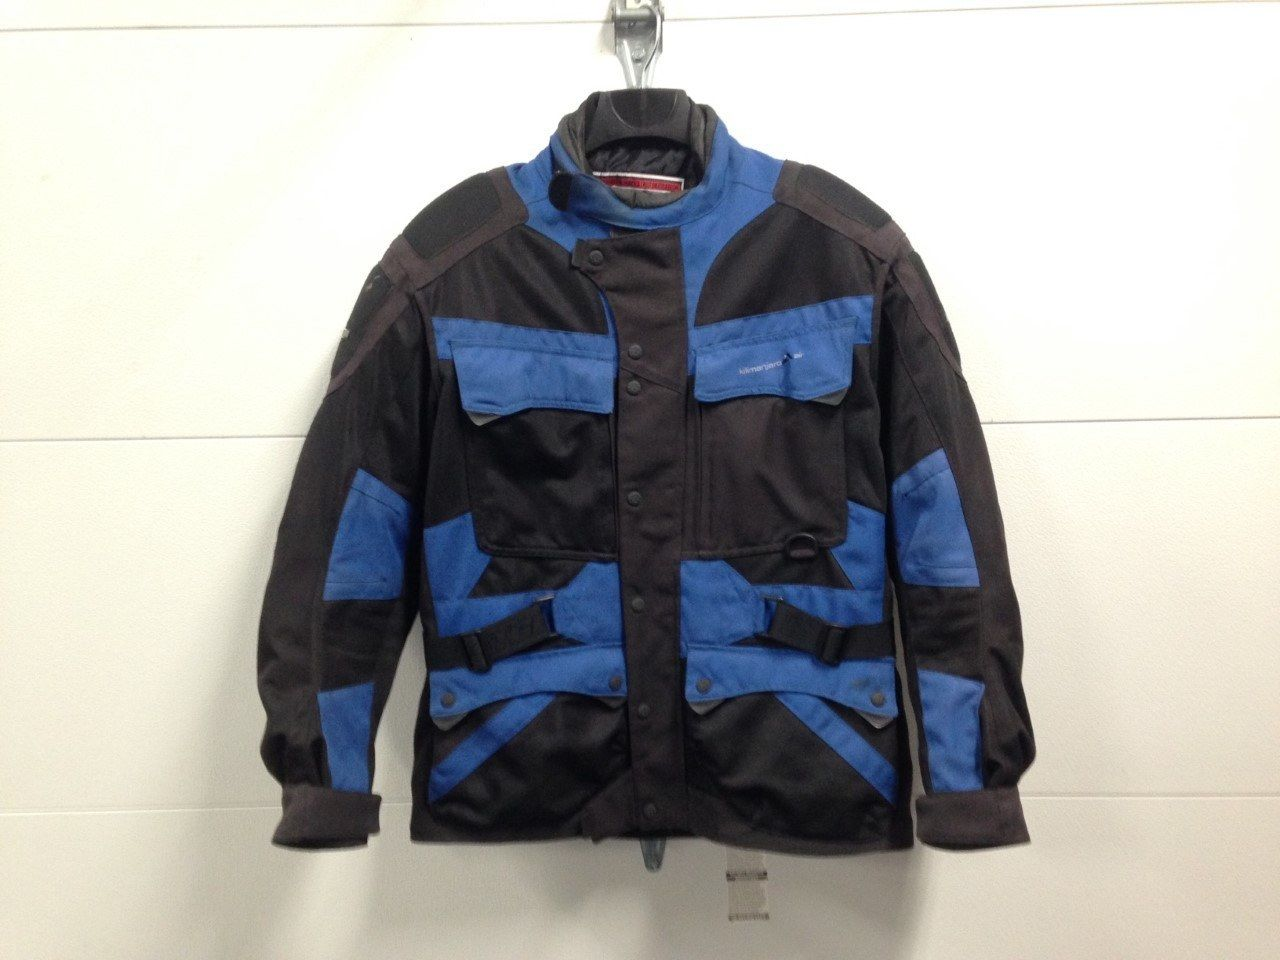 Kilamanjaro Air Jacket.jpg